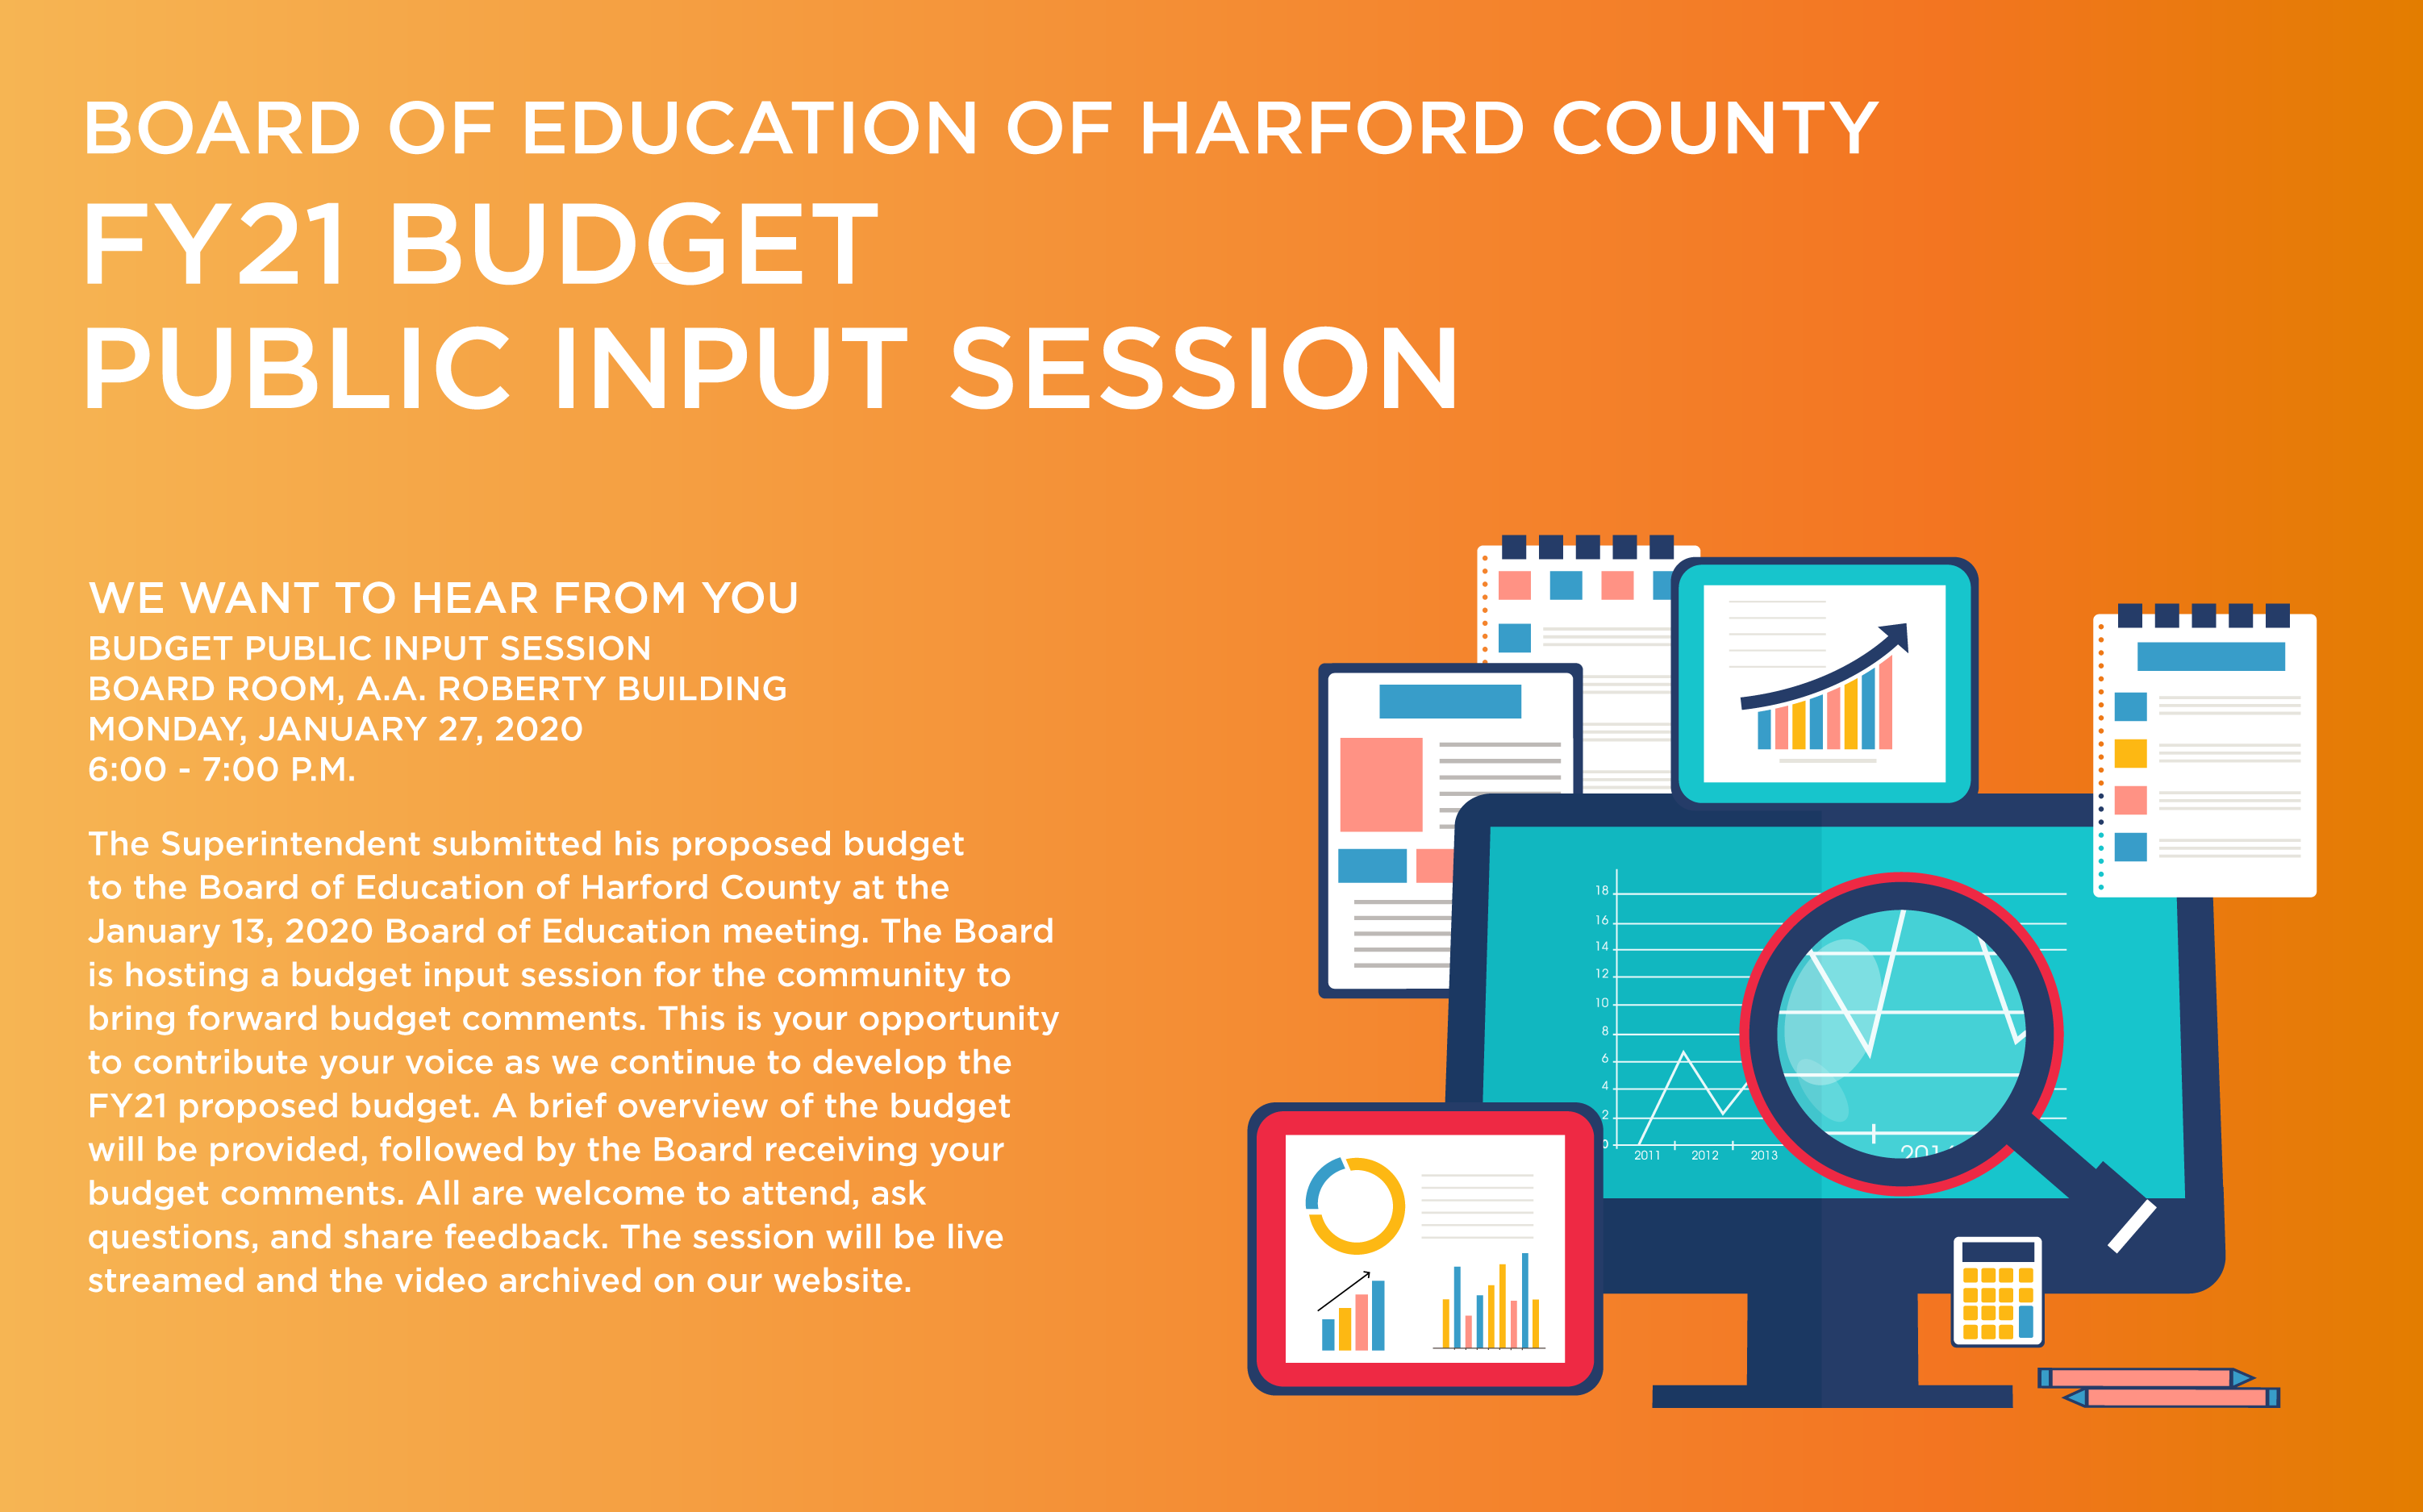 Board of Educcation of Harford County, FY21 Budget Public Input Session. We want to hear from you. Budget Public Input Session. Board Room, A.A. Roberty Building. Monday, January 27, 2020. 6:00 - 7:00 PM.  The Superintendent submitted his proposed budget to the Board of Education of Harford County at the January 13, 2020 Board of Education Meeting. The Board is hosting a budget input session for the community to bring forward budget comments. This is your opportunity to contribute your voice as we continue to develop the FY21 proposed budget. A brief overview of the budget will be provided, followed by the Board receiving your budget comments. All are welcome to attend, ask questions, and share feedback. The session will be live streamed and the video archived on our webiste.